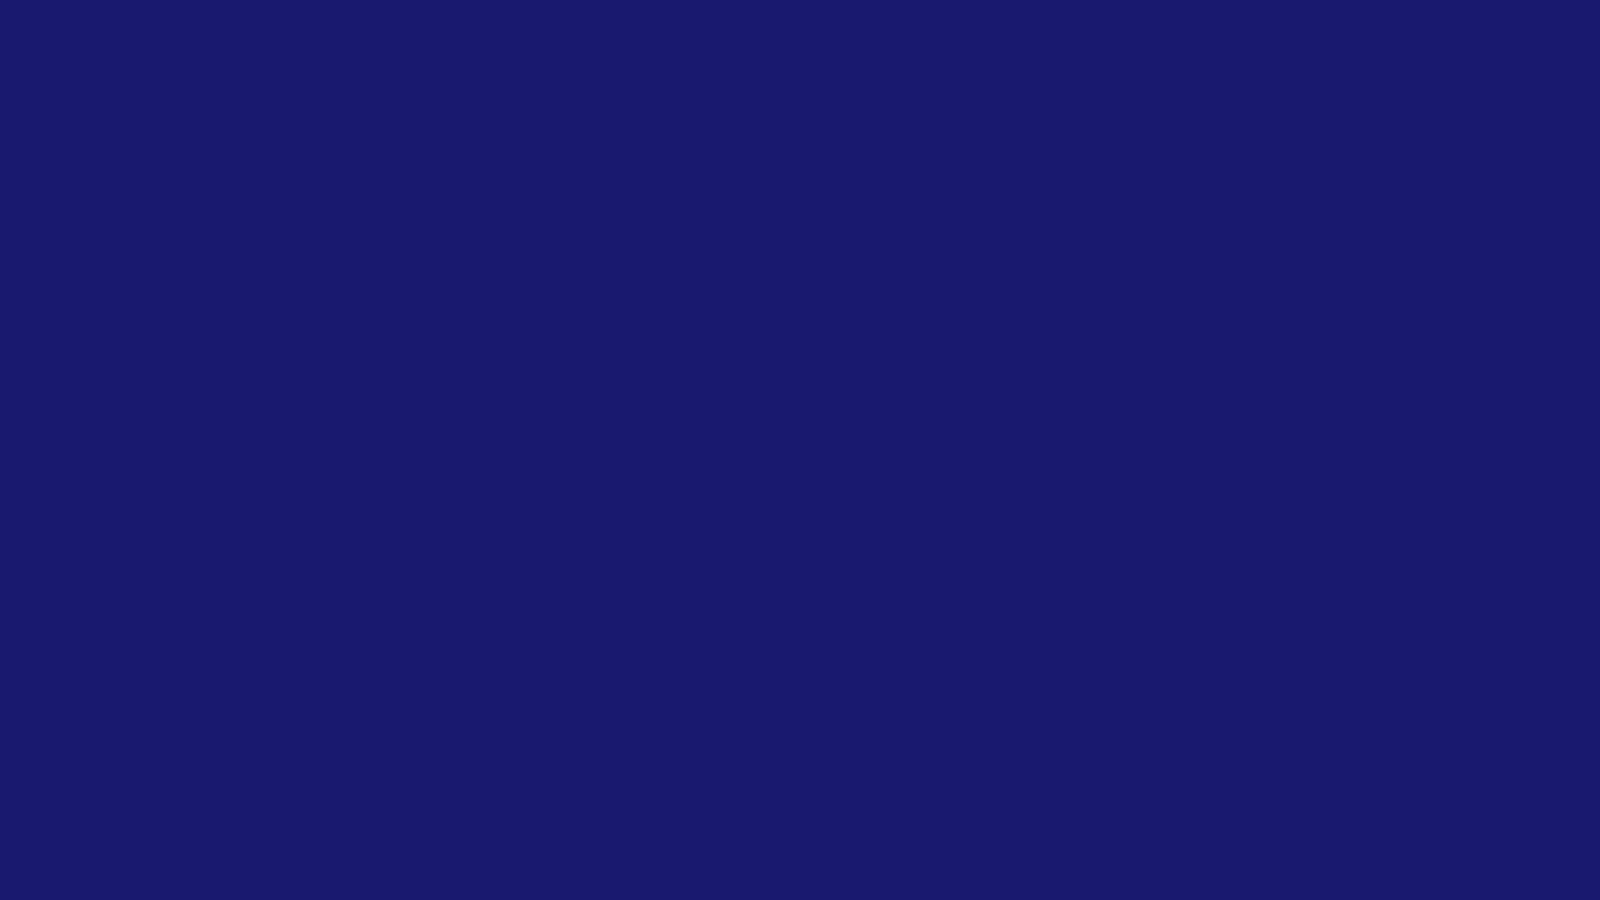 1600x900 Midnight Blue Solid Color Background